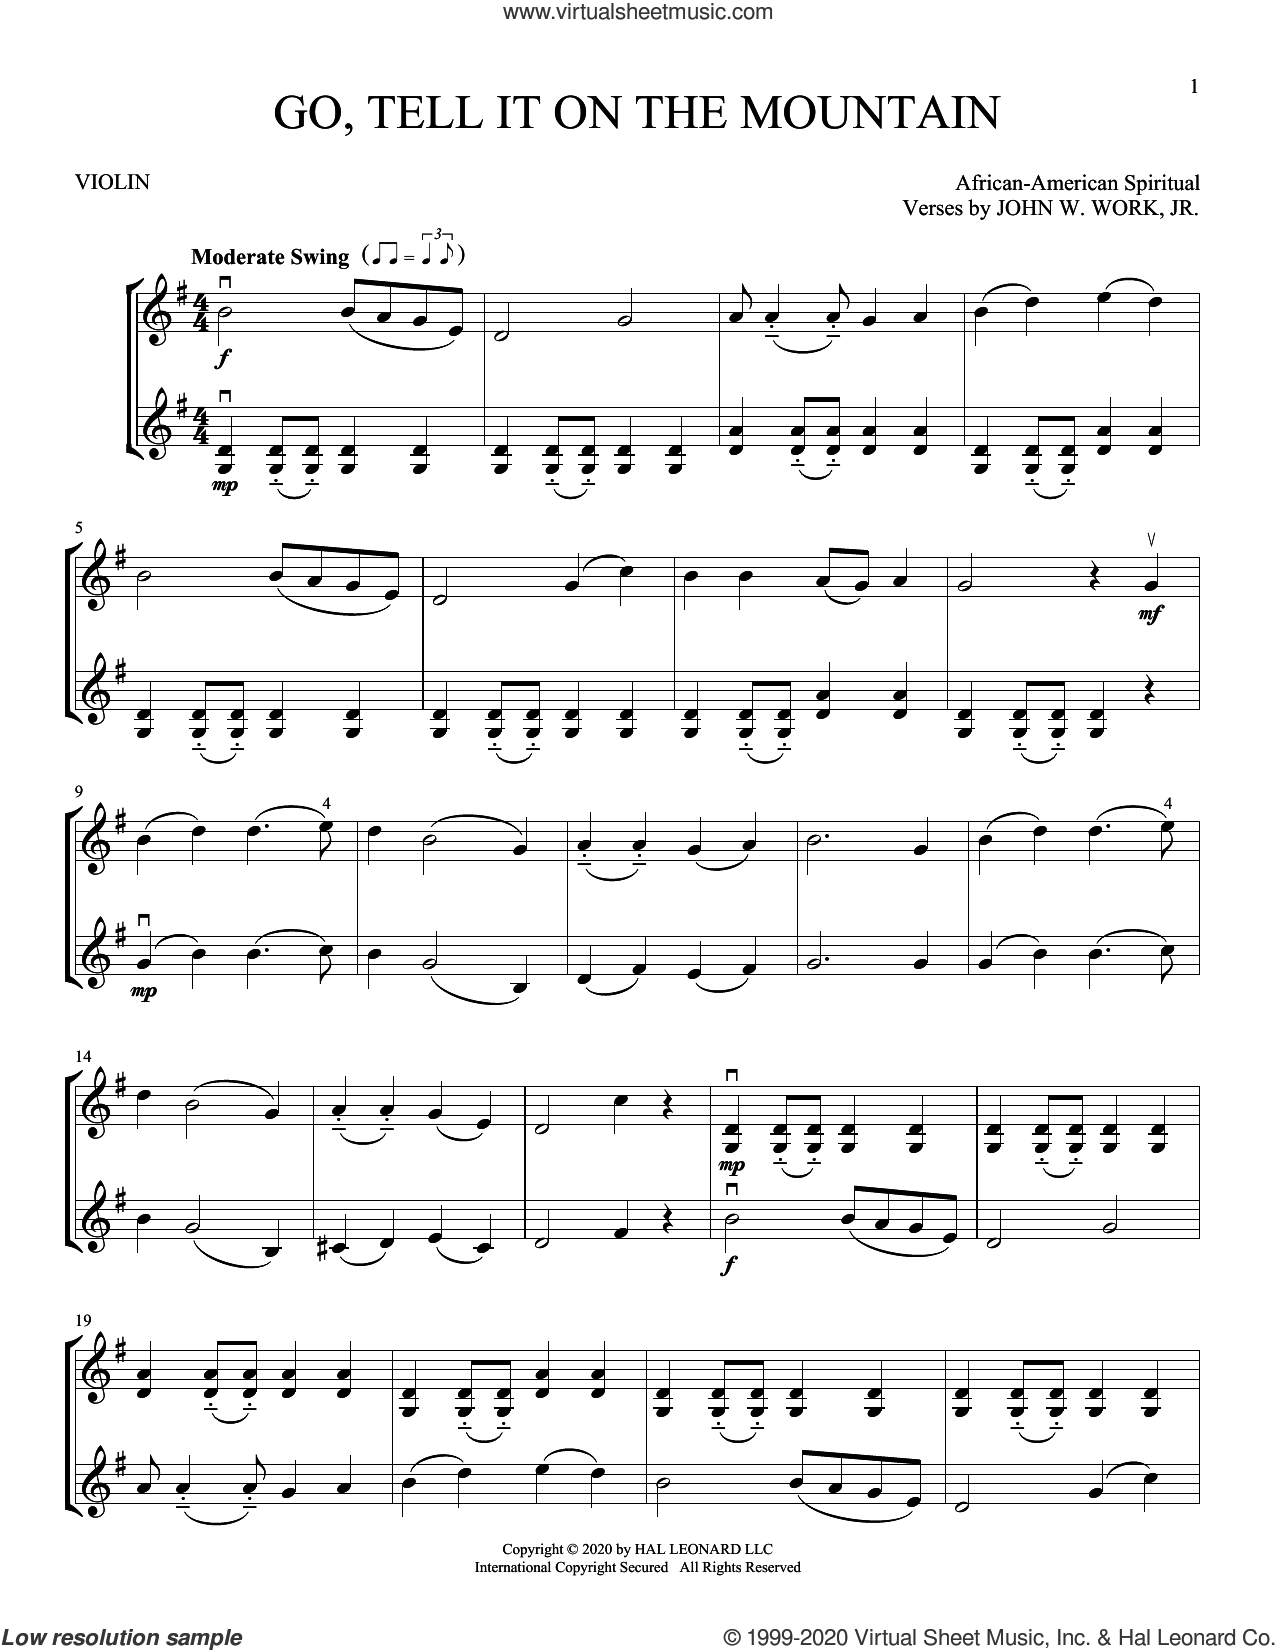 Go, Tell It On The Mountain sheet music for two violins (duets, violin duets) by John W. Work, Jr. and Miscellaneous, intermediate skill level